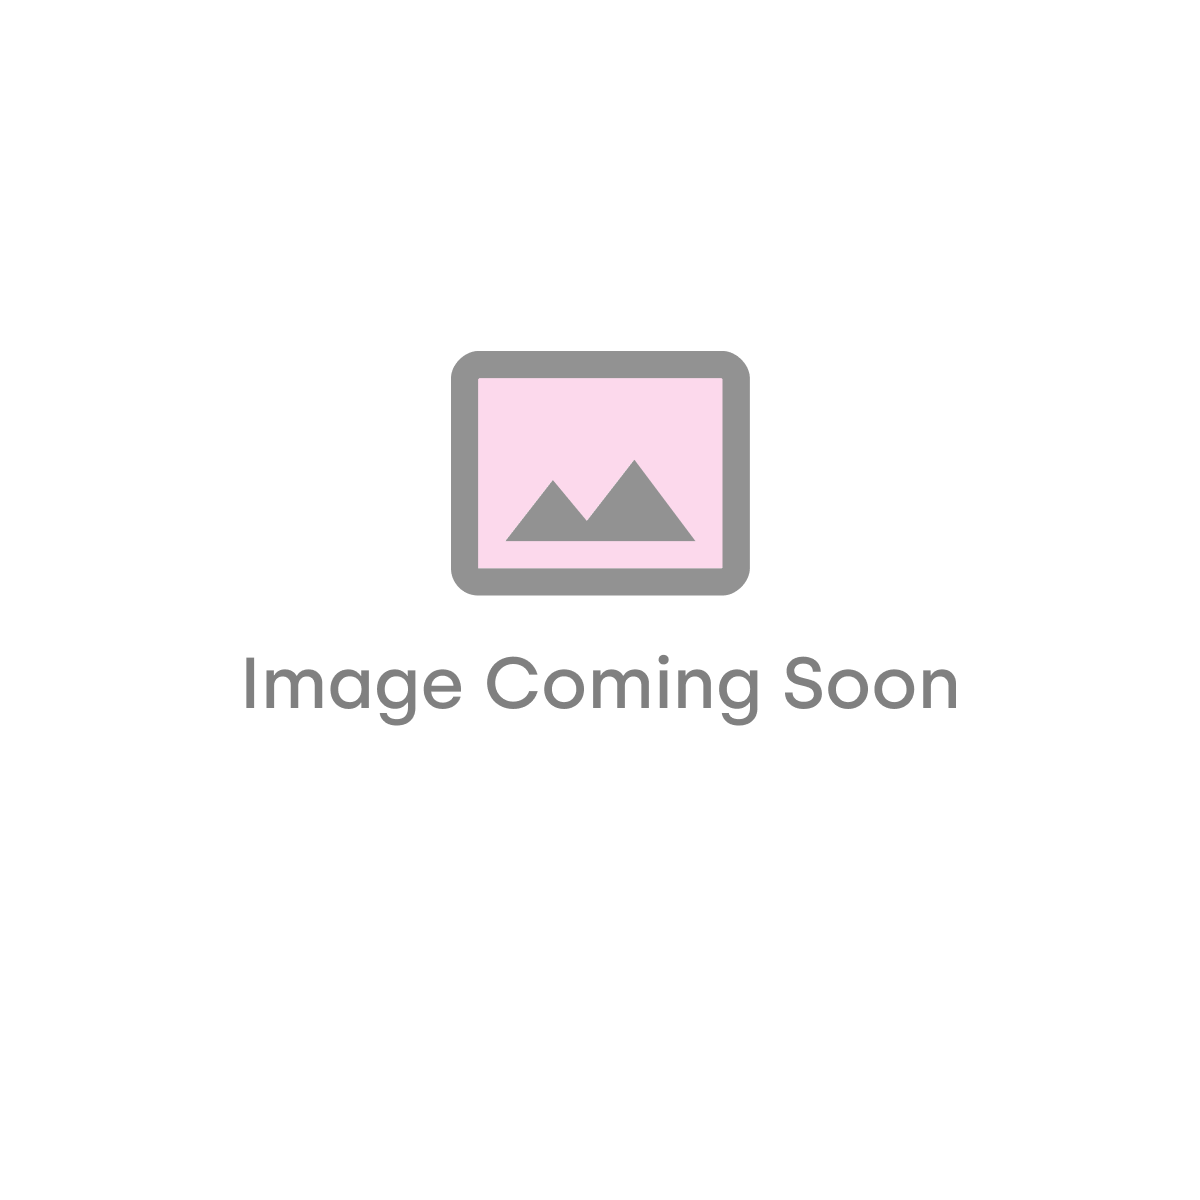 Rockford Oak 8mm Laminate Wooden Flooring - 2.22sqm per pack (13960)